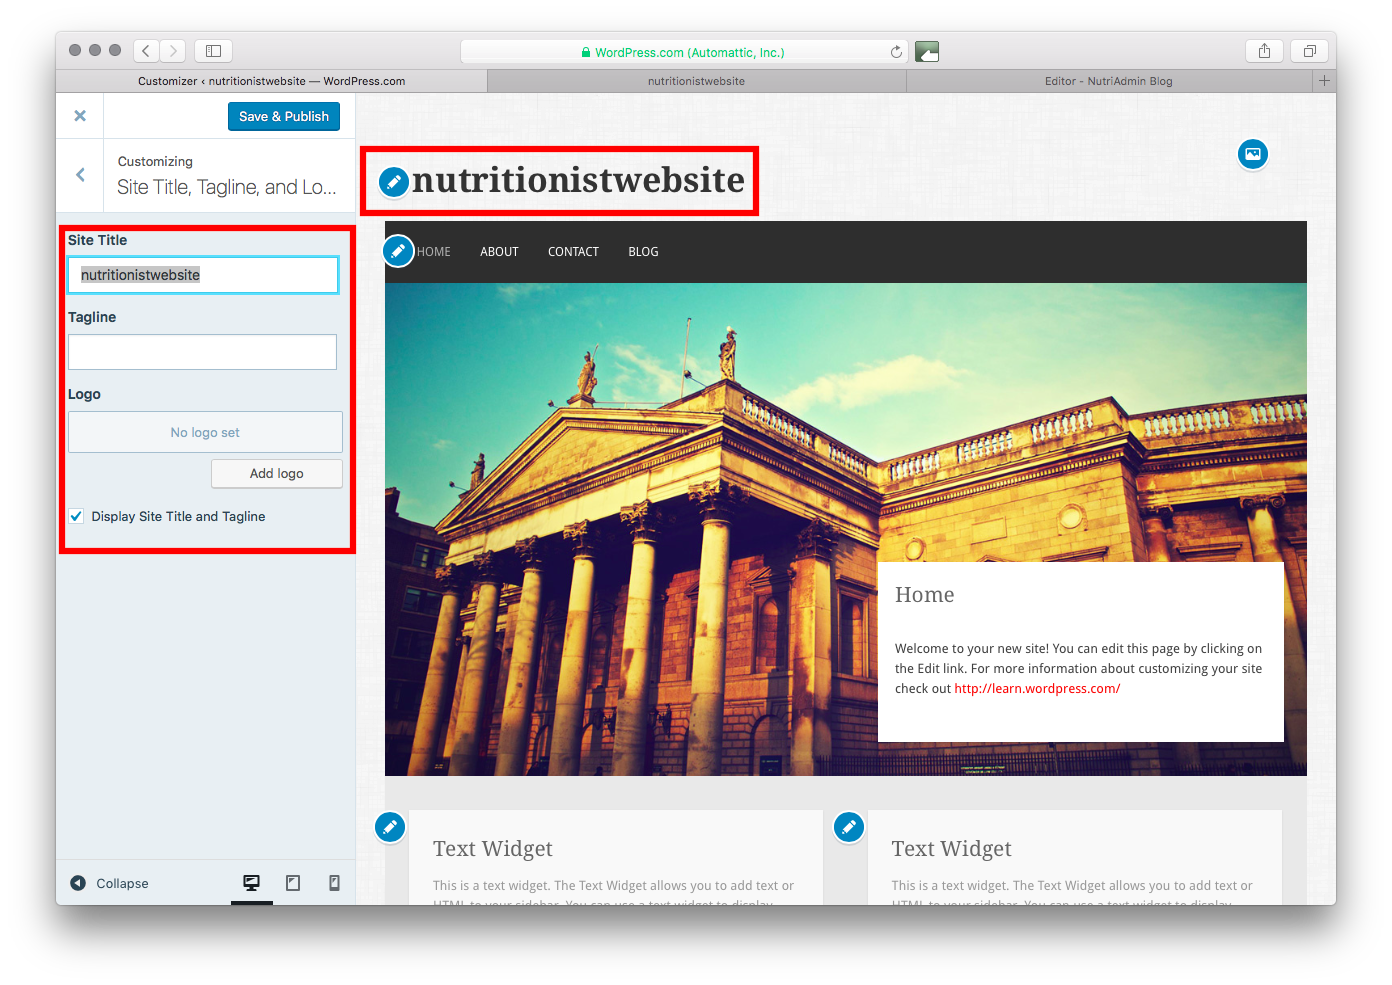 Customiser for nutritionist site in Wordpress